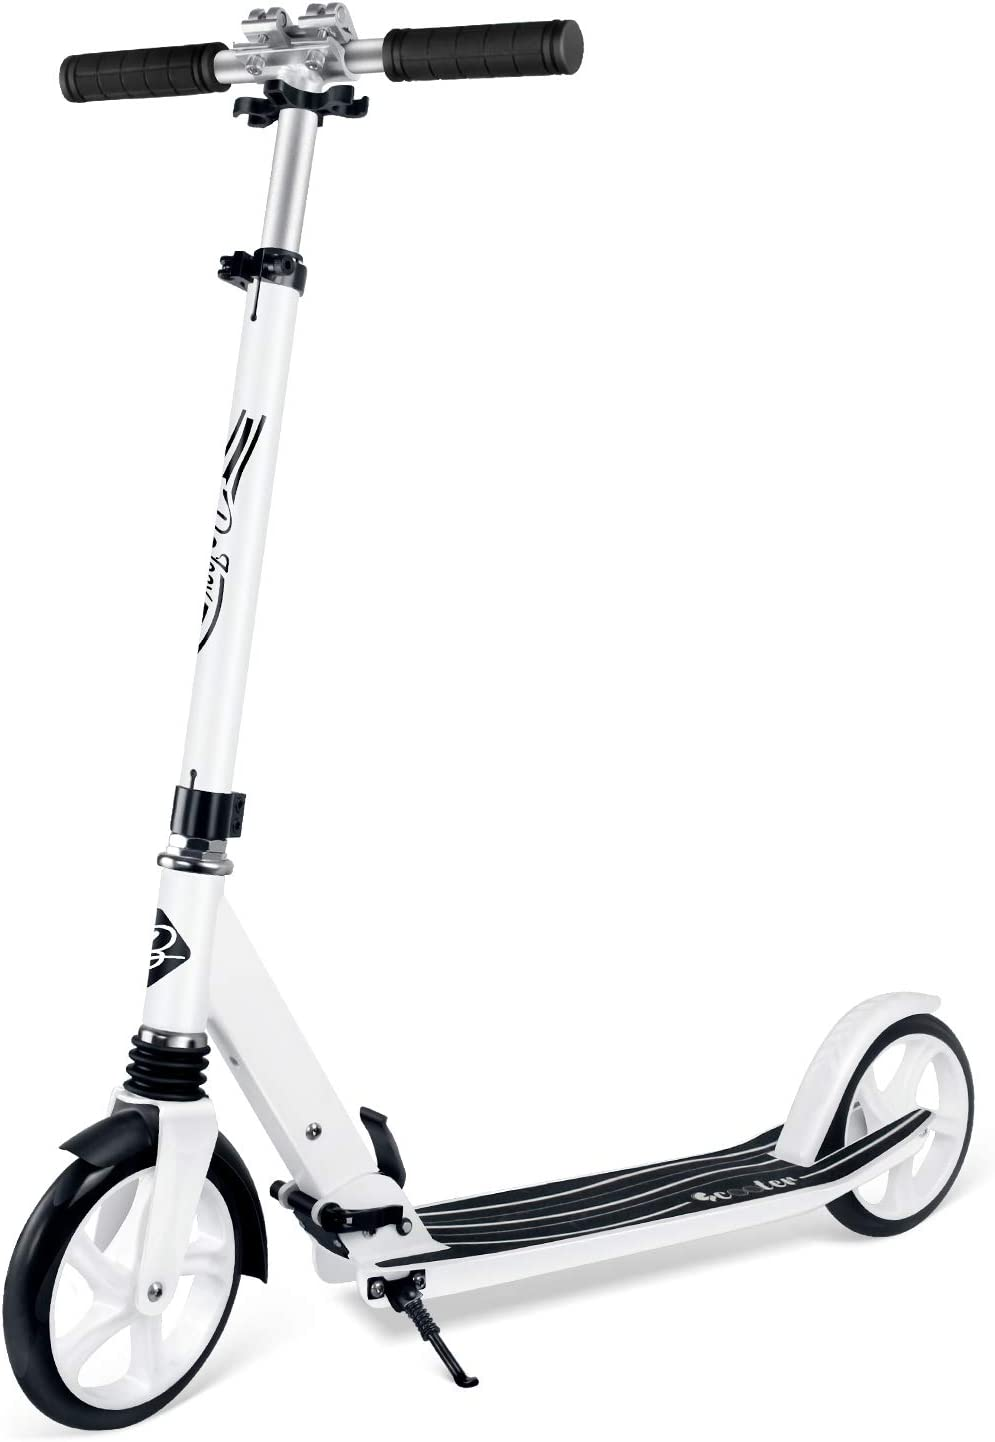 BELEEV V5 Scooters for Kids 8 Years and up Foldable Kick Scooter 2 Wheel Large 200mm Wheels Great Scooters for Adults and Teens Shock Absorption Mechanism Quick-Release Folding System